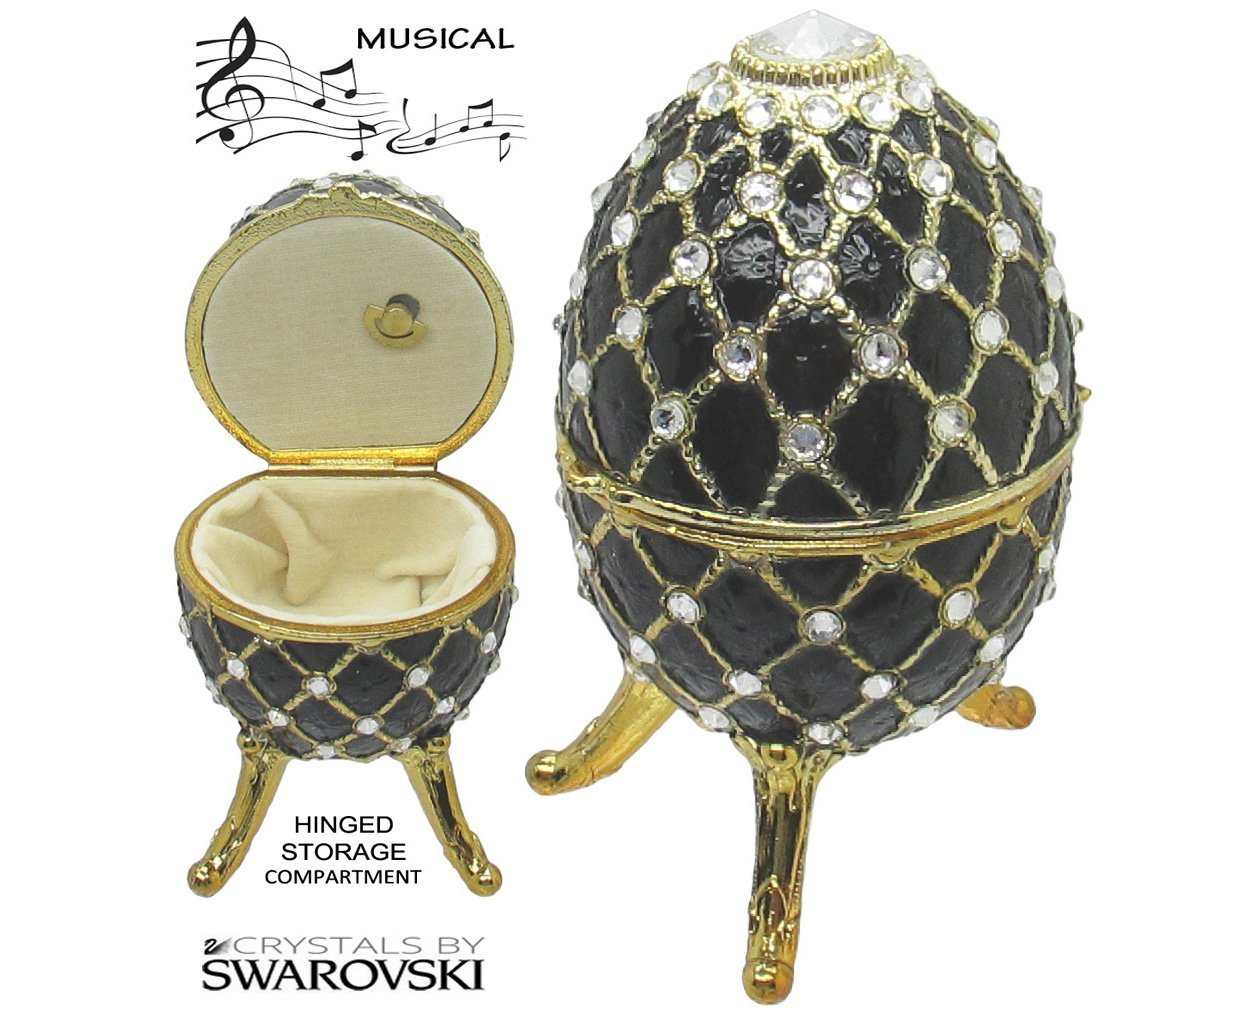 Primary image for Musical Jewelry and Trinket Box with Swarovski Crystals, Gold/Black